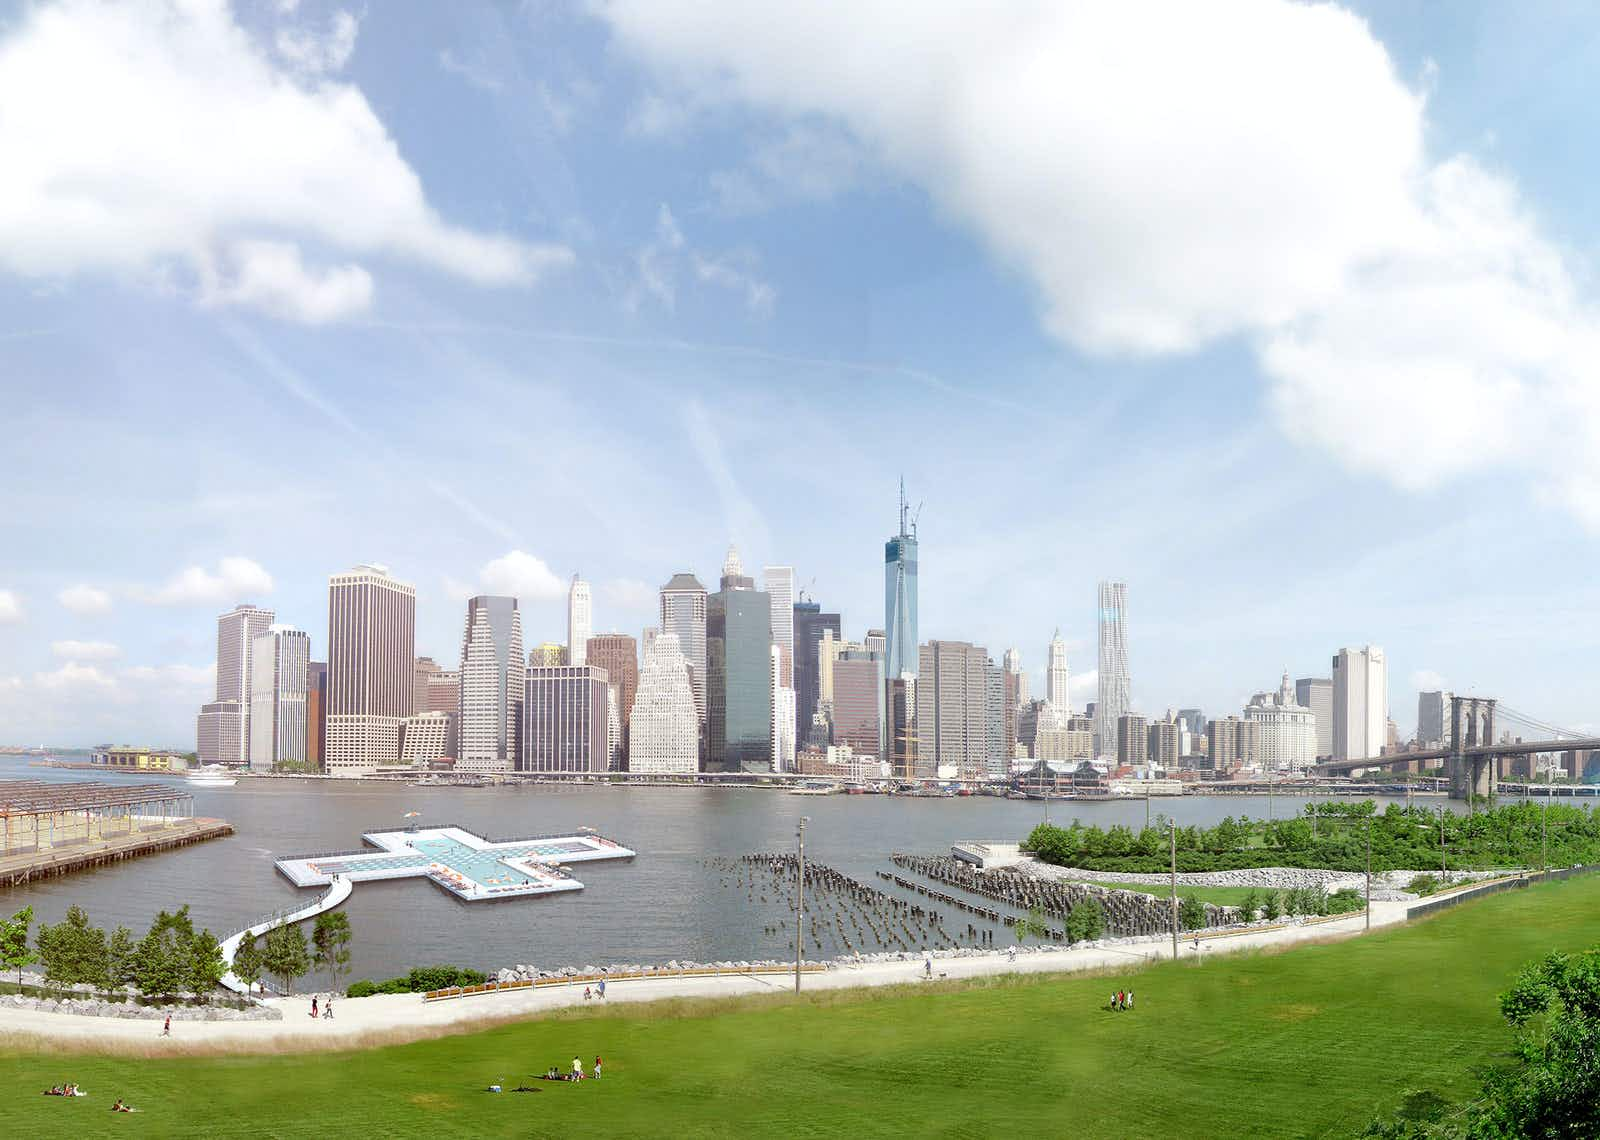 This amazing floating plus pool could soon allow people swim in New York's rivers